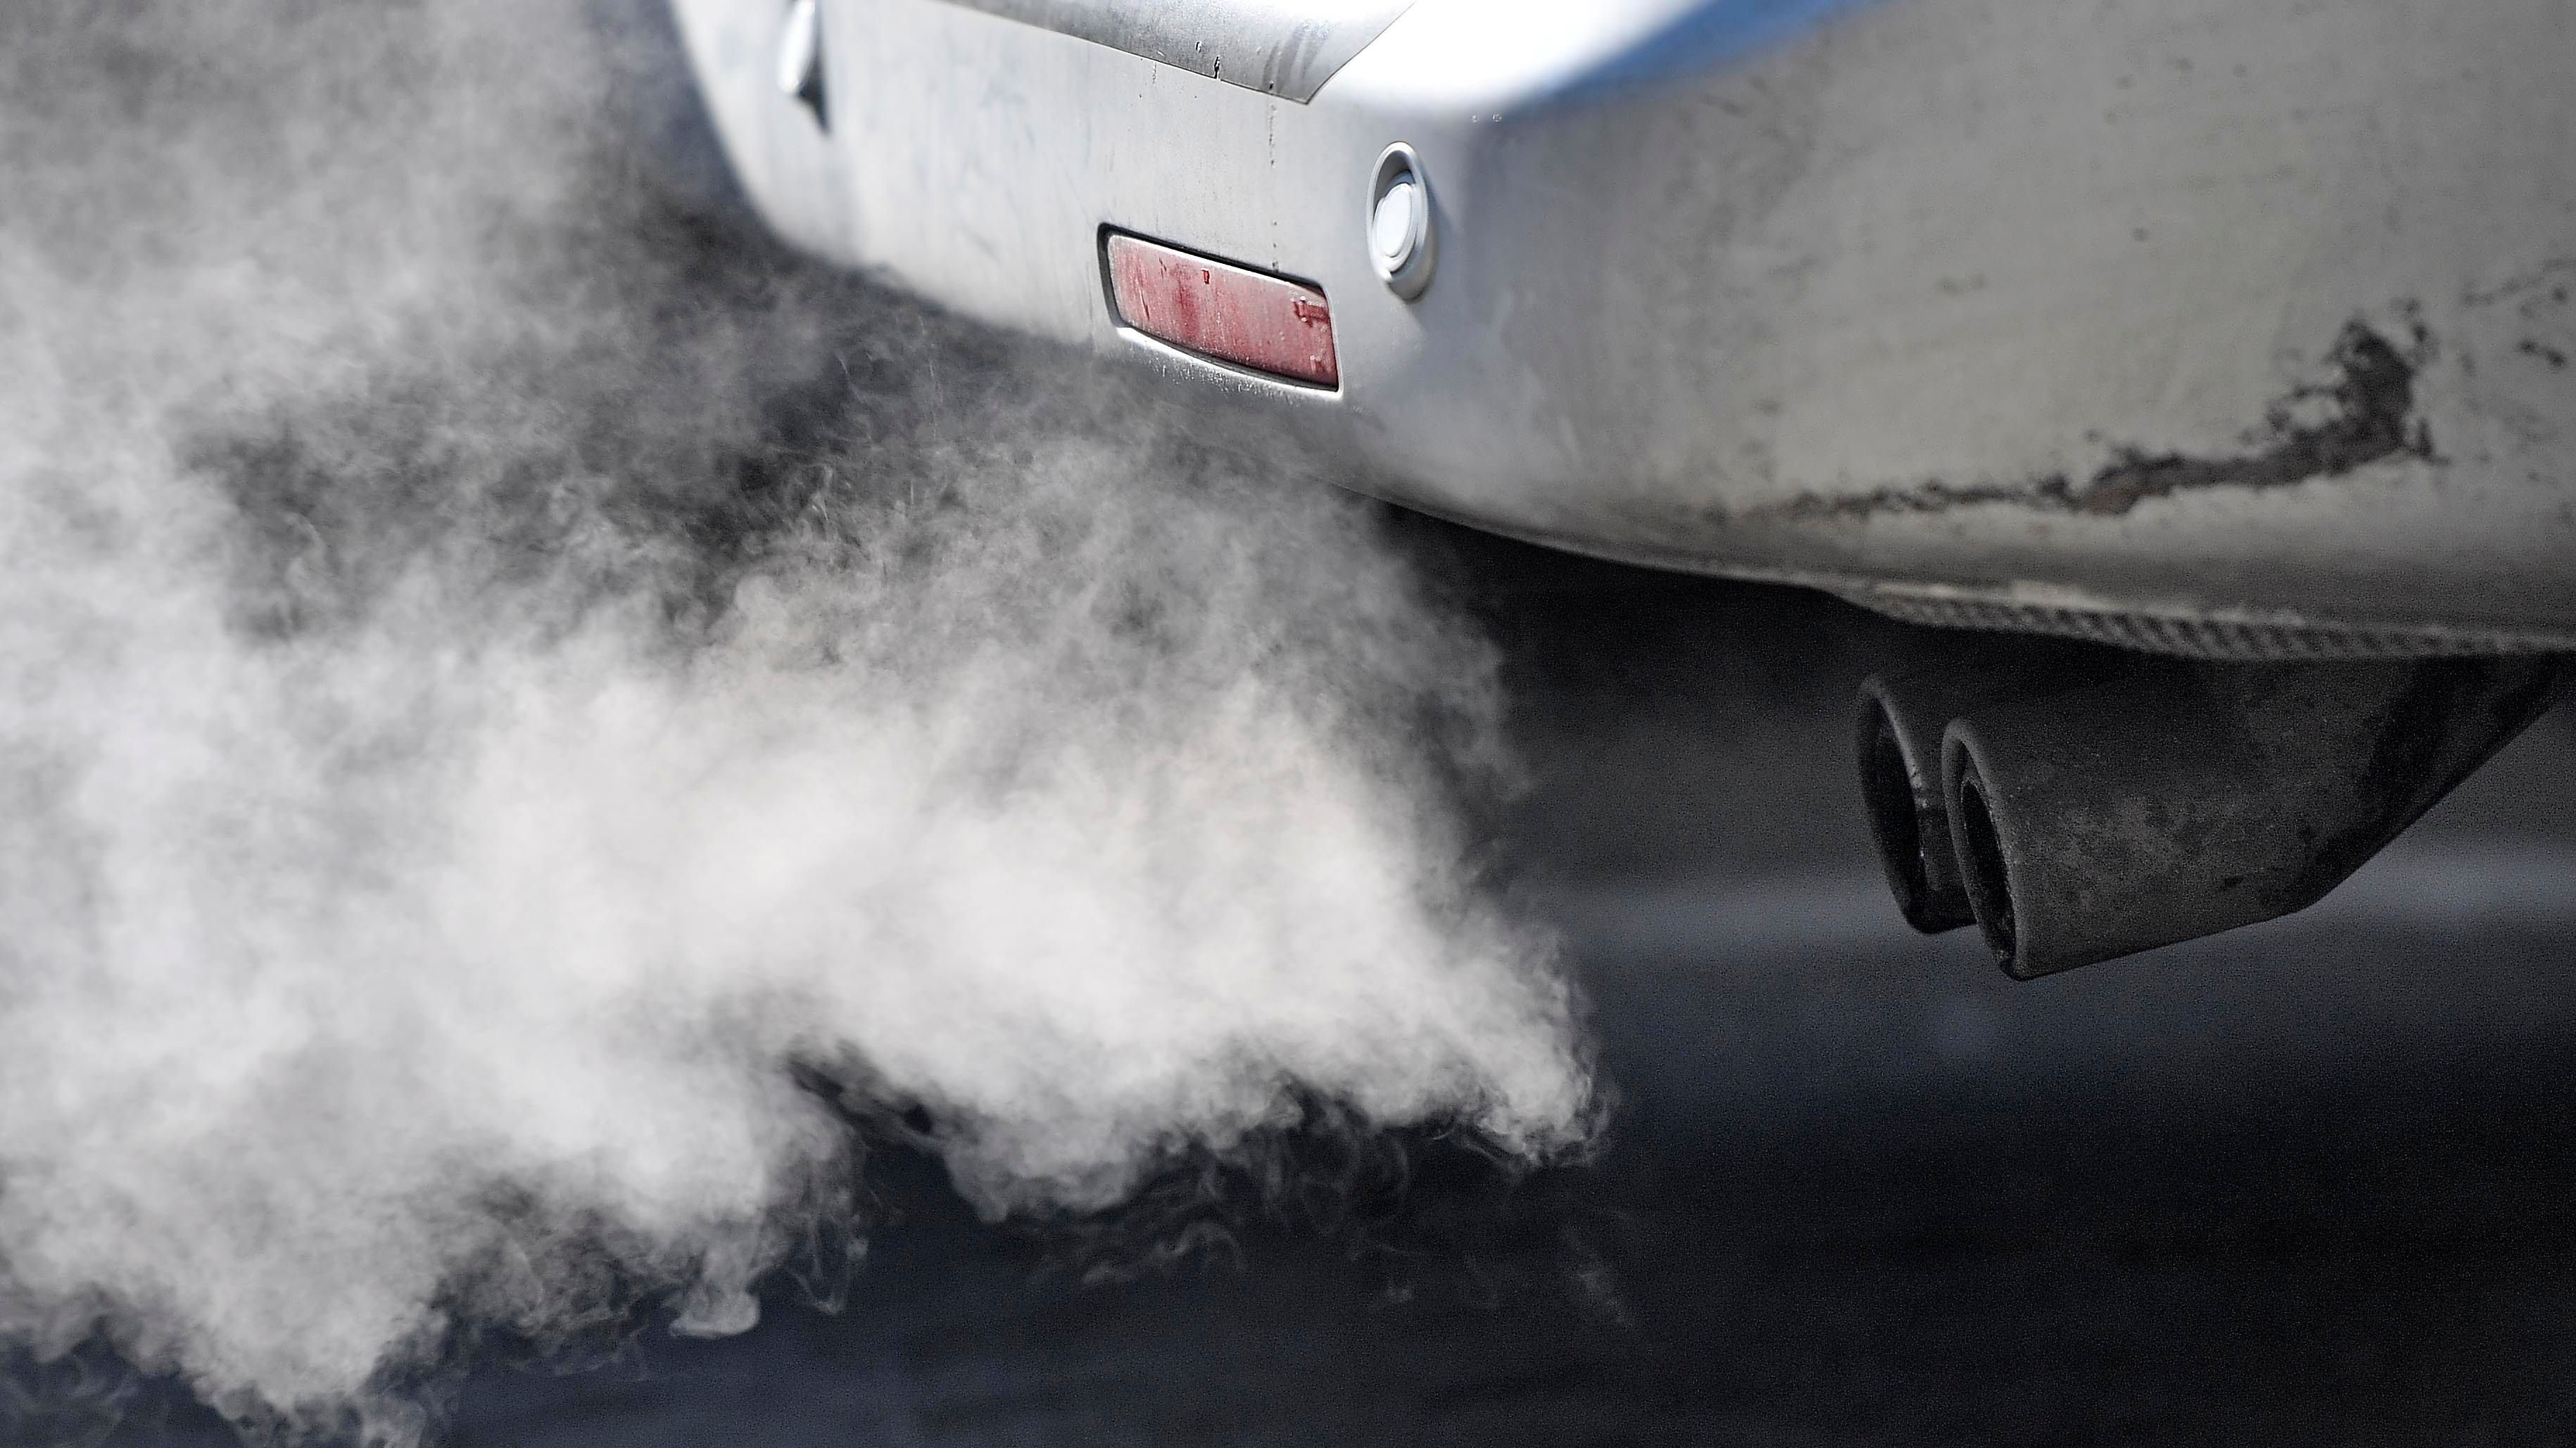 Study Finds Link Between Hypertension and Air Pollution